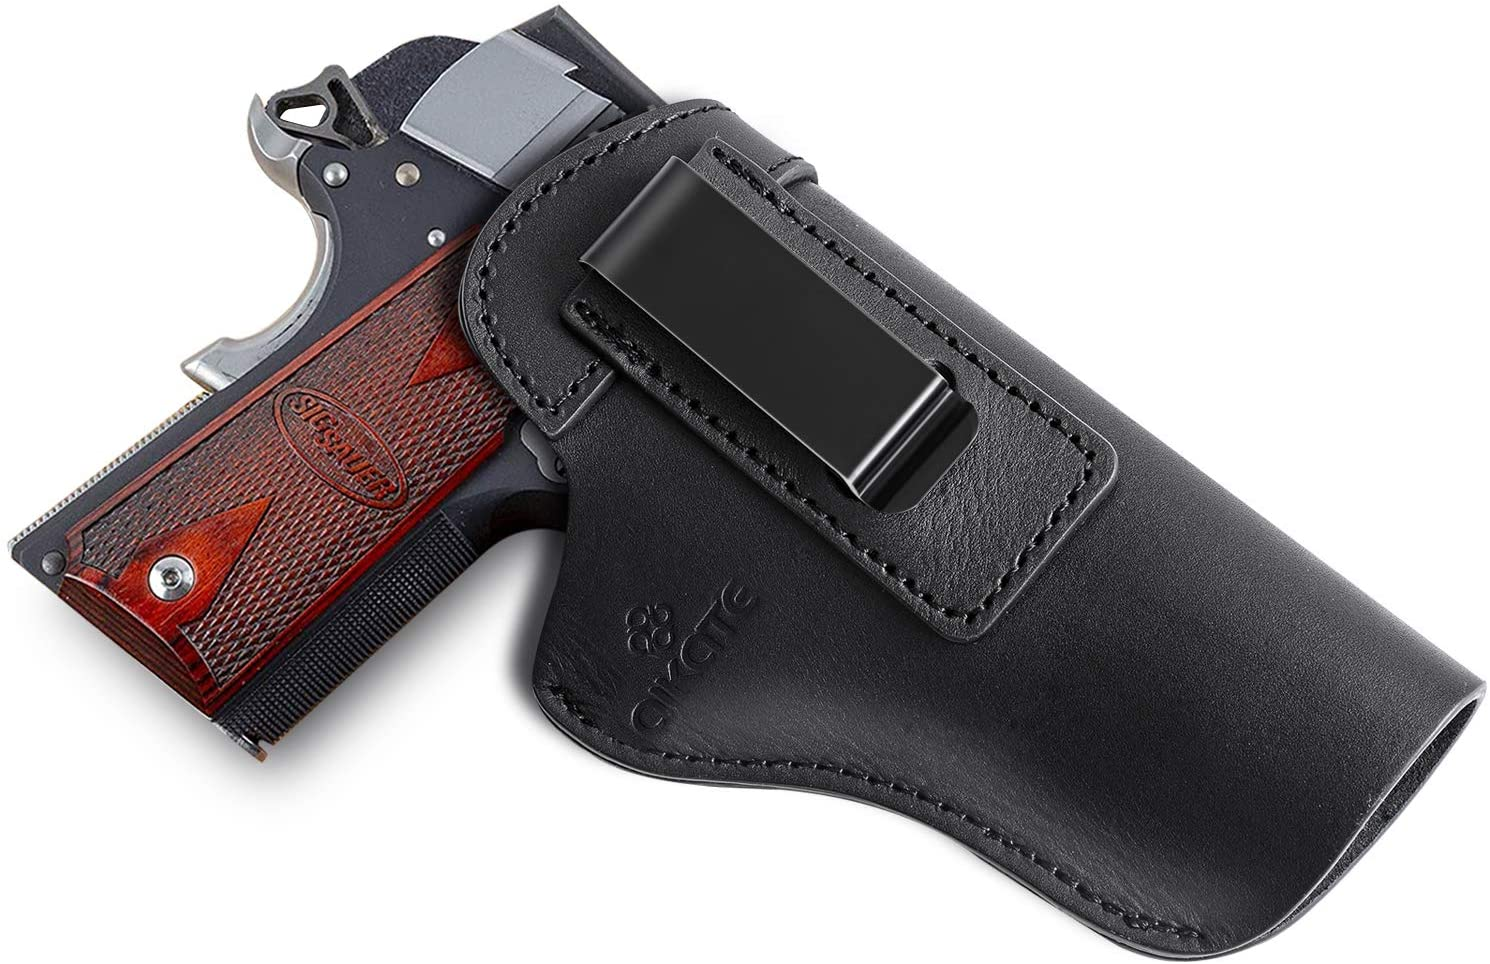 1911 Leather Holster, Inside The Waist Band IWB Holsters, Fits Most 1911 Style Handguns Sig Sauer Springfield Armory Kimber Colt Smith and Wesson S&W Remington Taurus 1911 Pistols Series